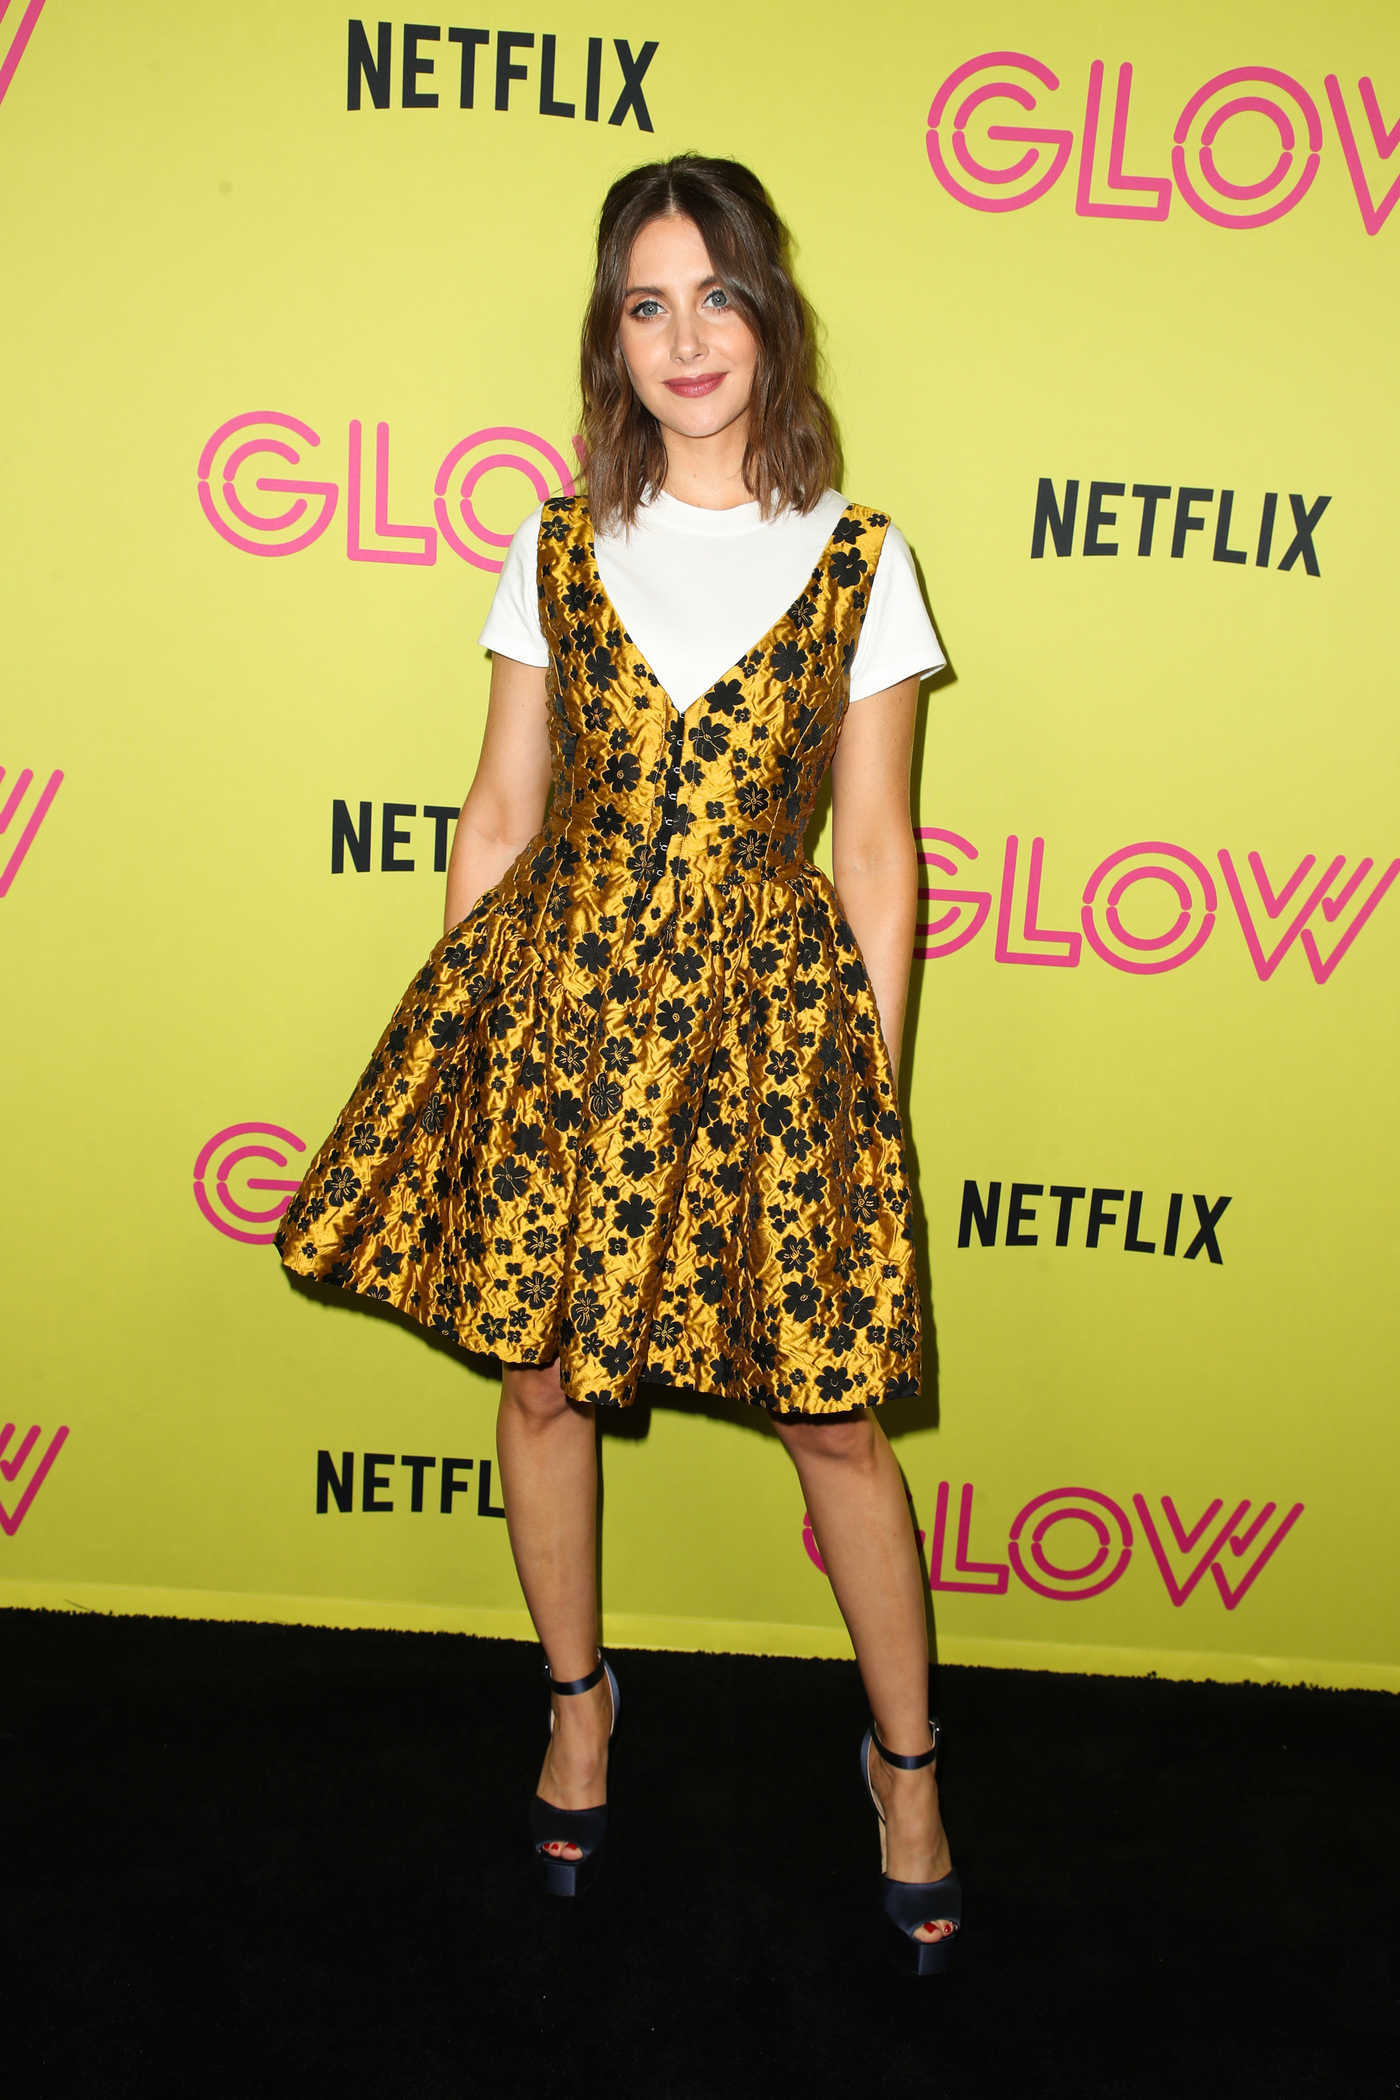 Alison Brie Attends Netflix Glow Roller Skating Event in Los Angeles 07/29/2018